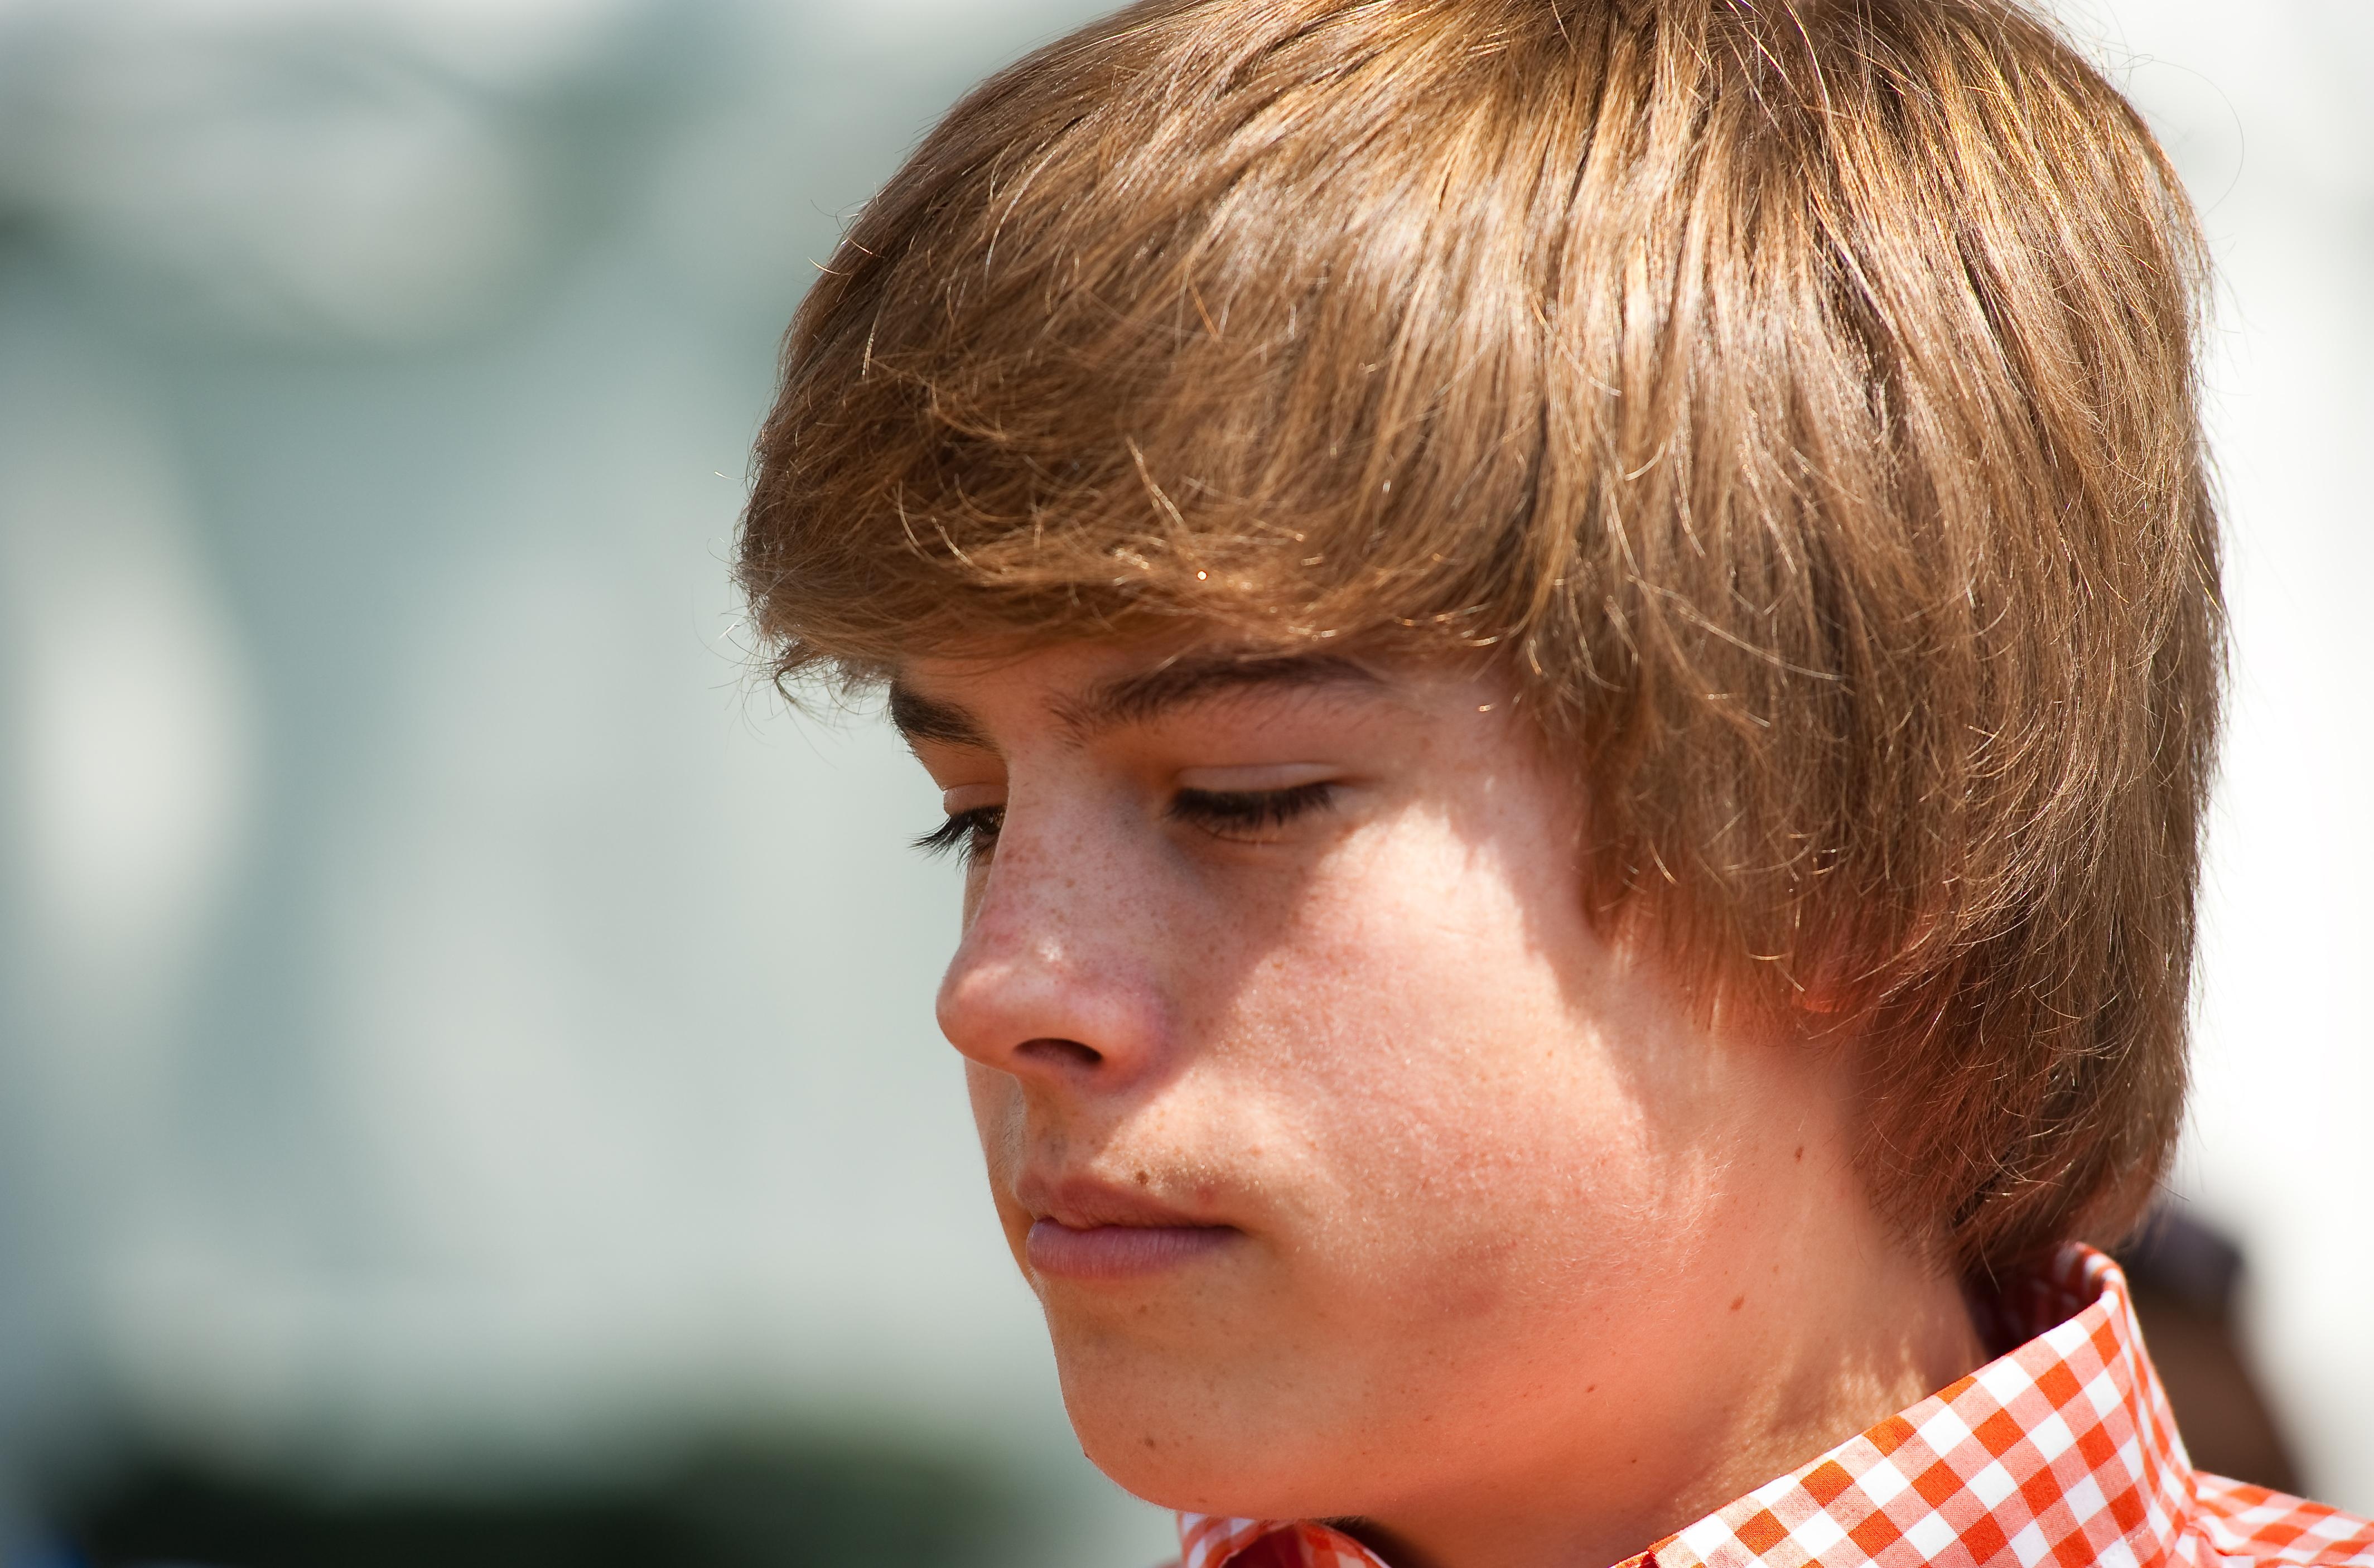 Daniel Ogren, Dylan Sprouse 2010 2, CC BY-SA 3.0